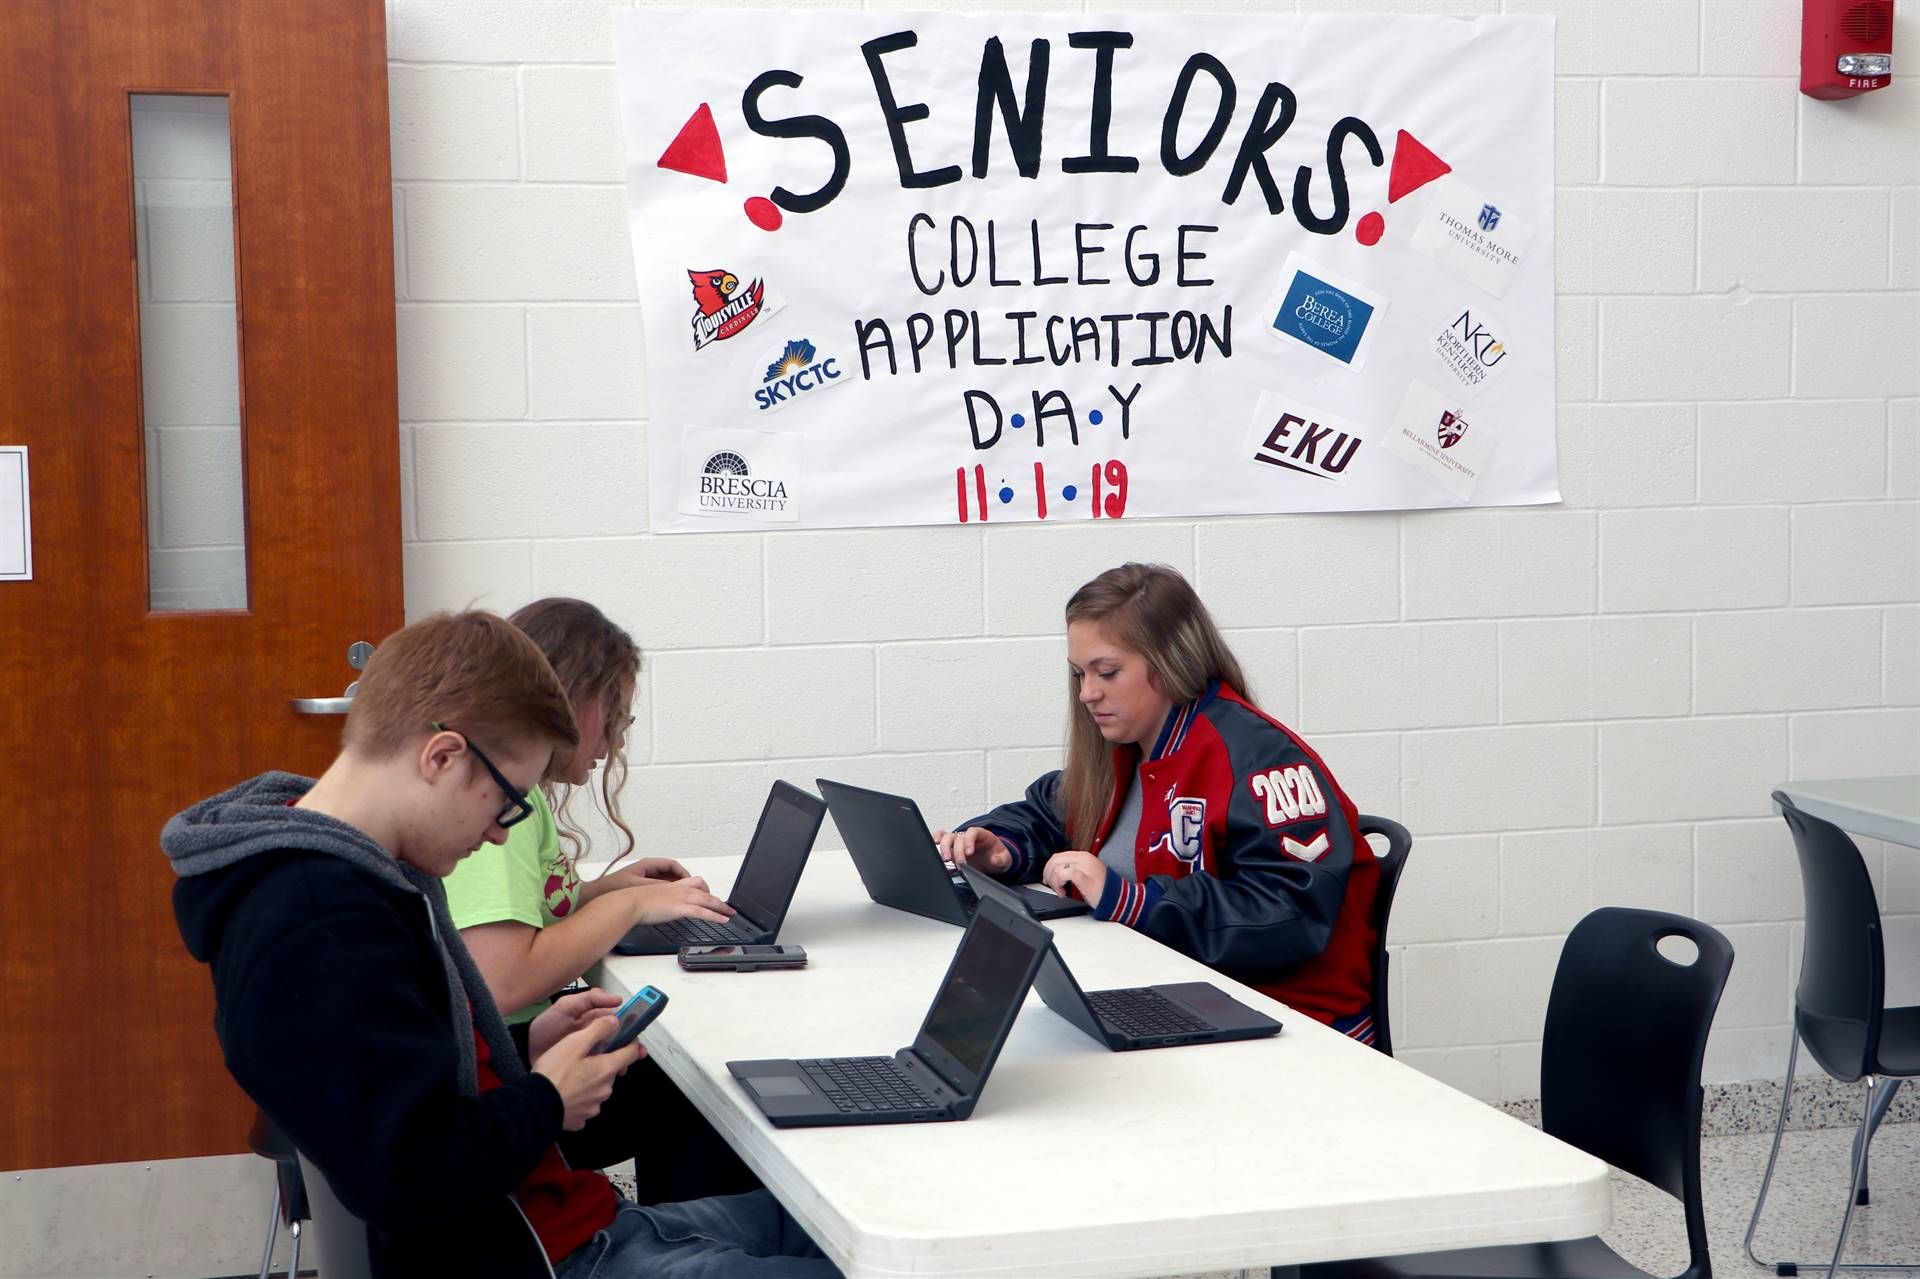 College Application Day 2019